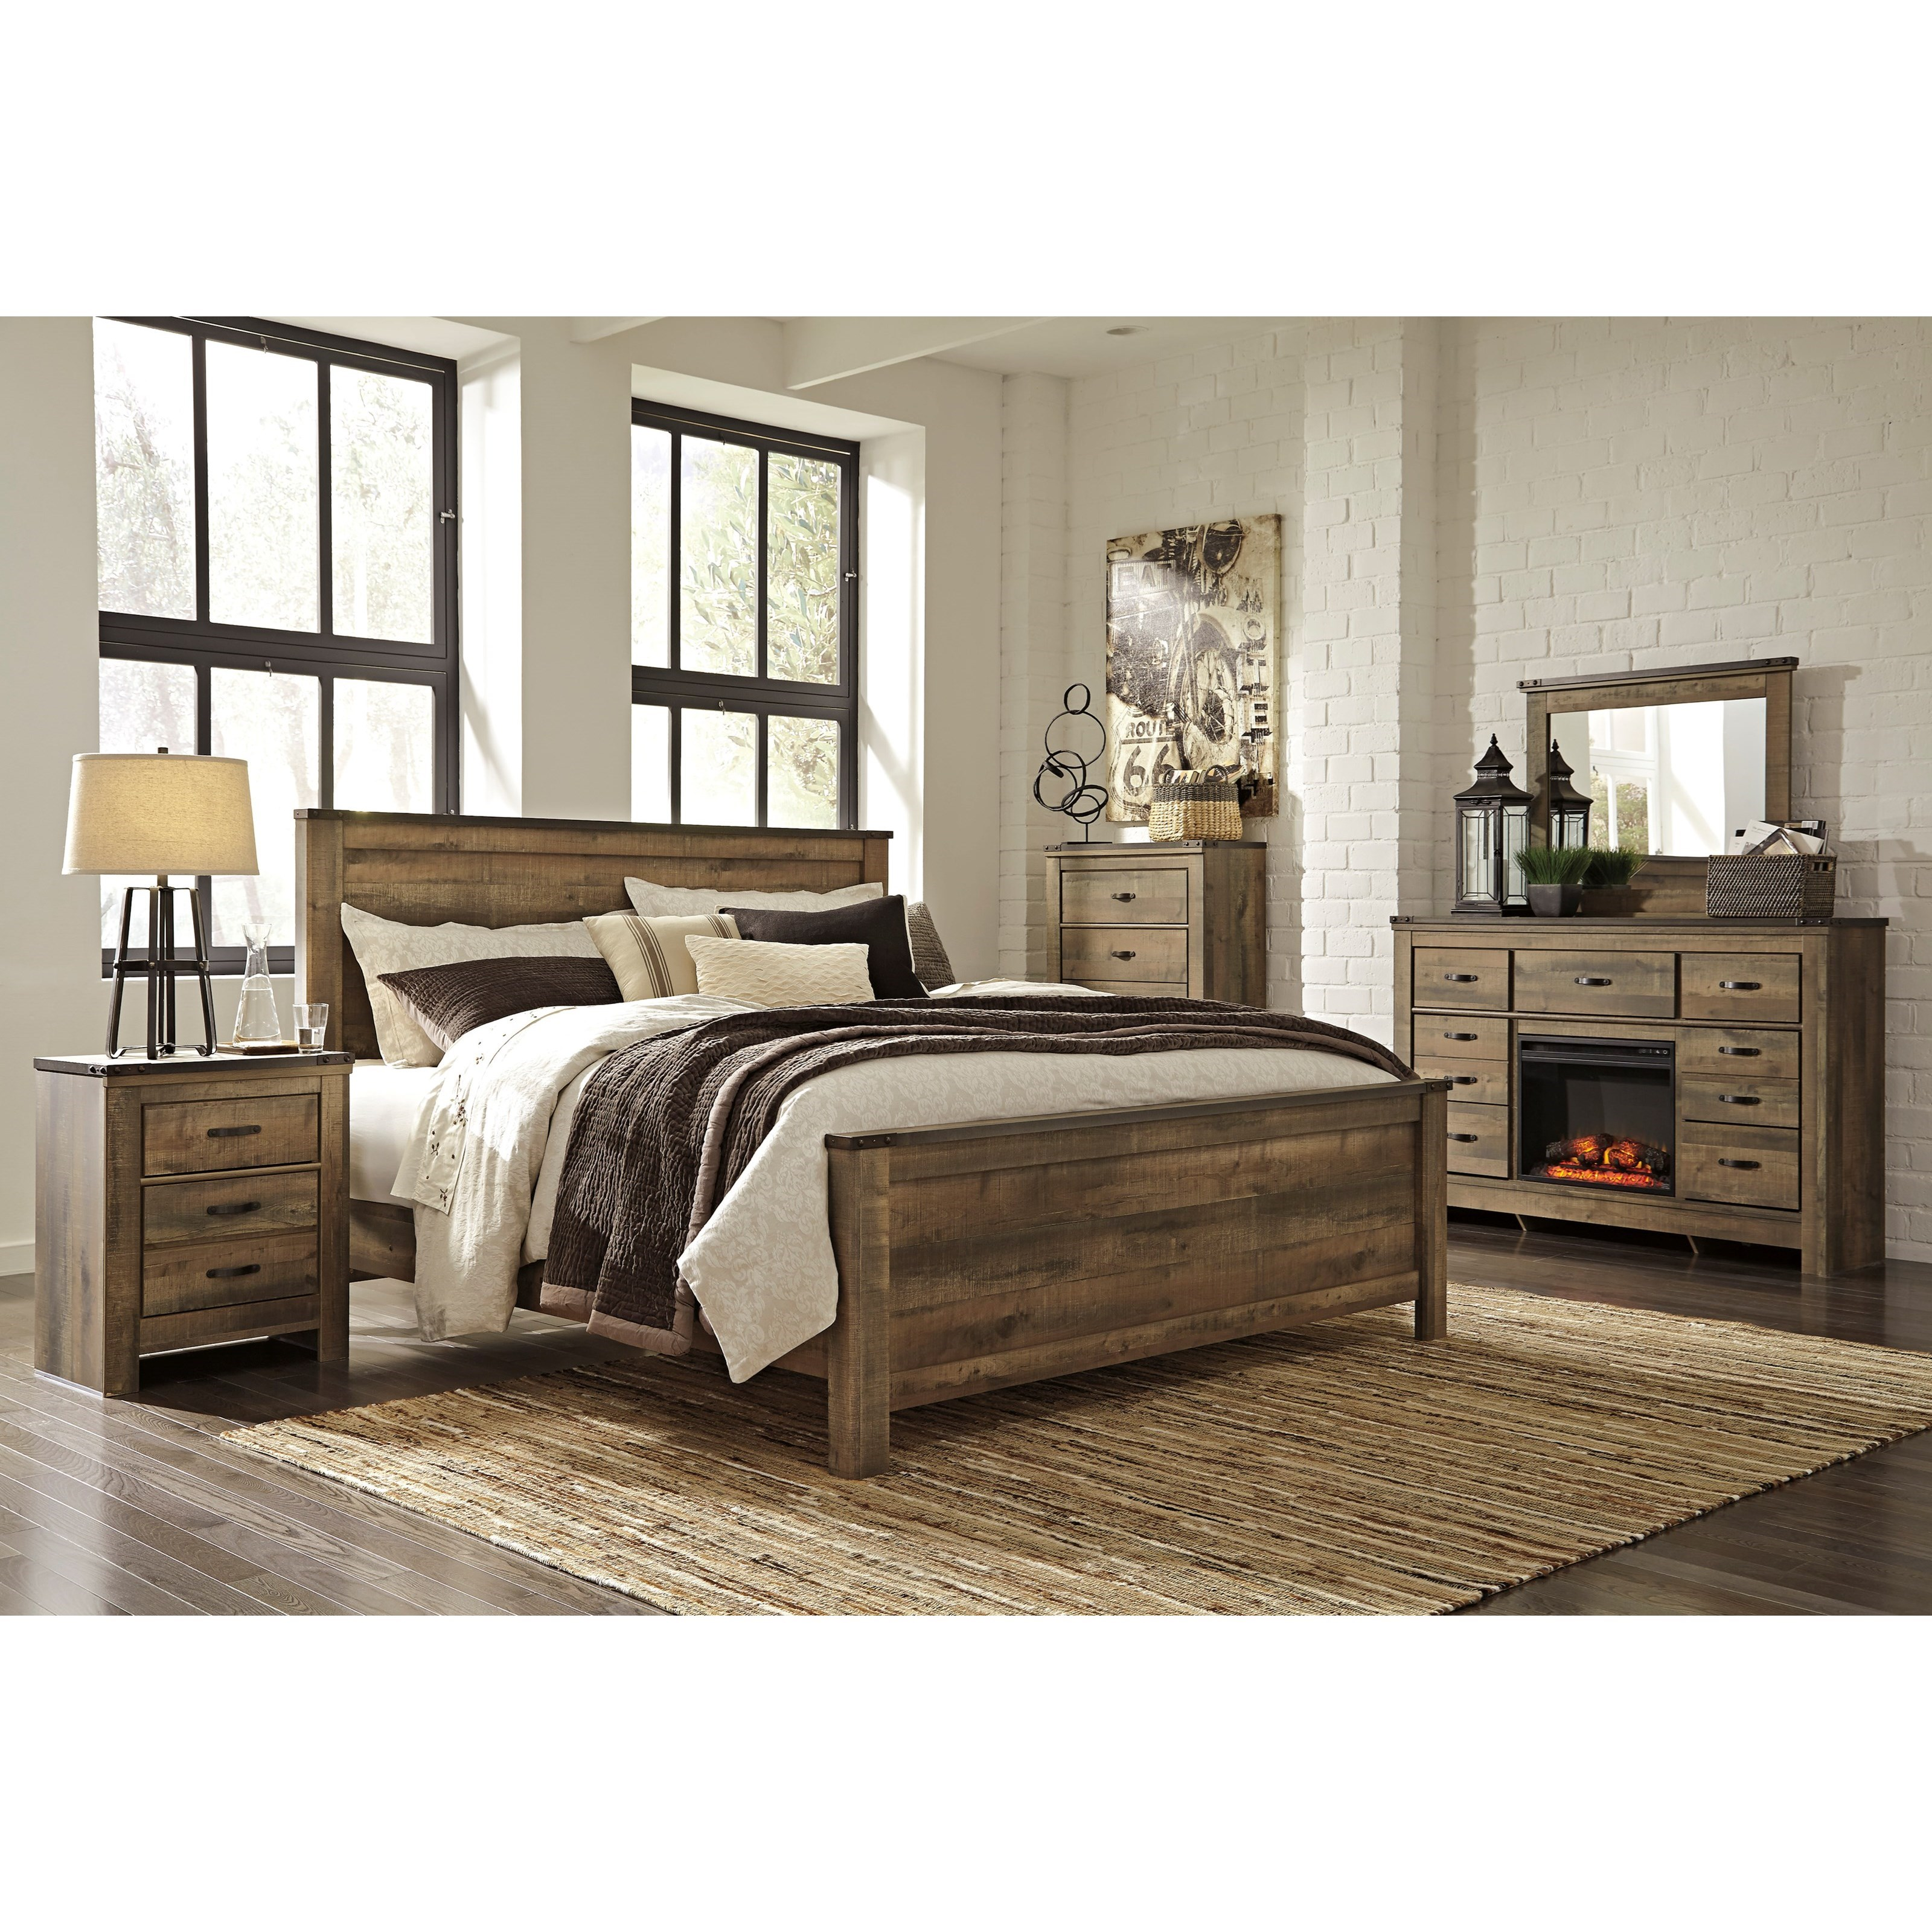 Ashley City Furniture: Signature Design By Ashley Trinell King Bedroom Group